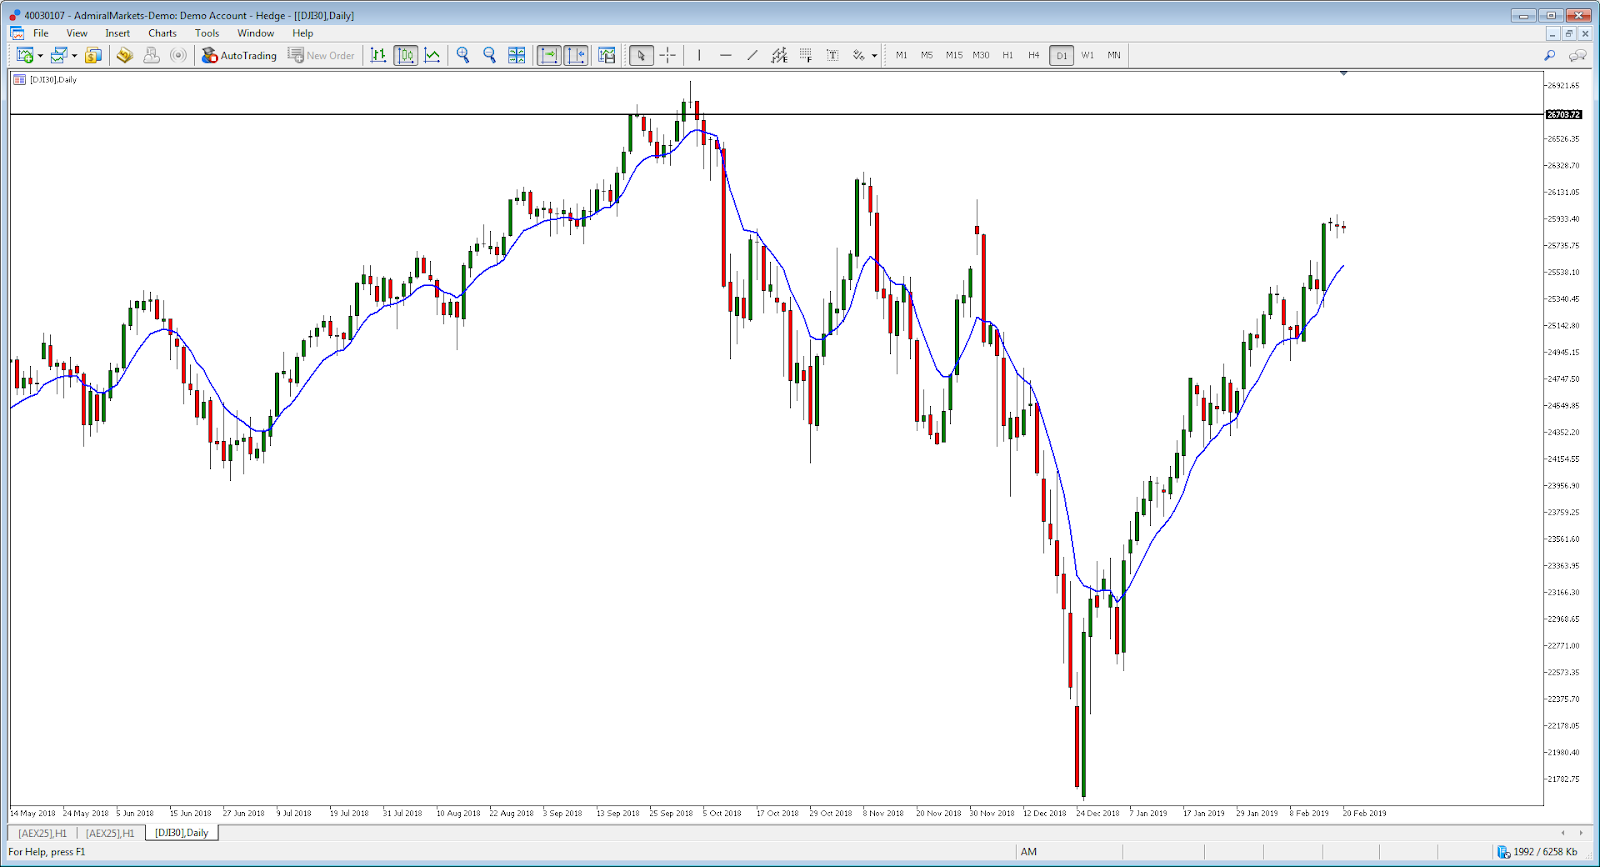 Dow Jones Index grafico diario